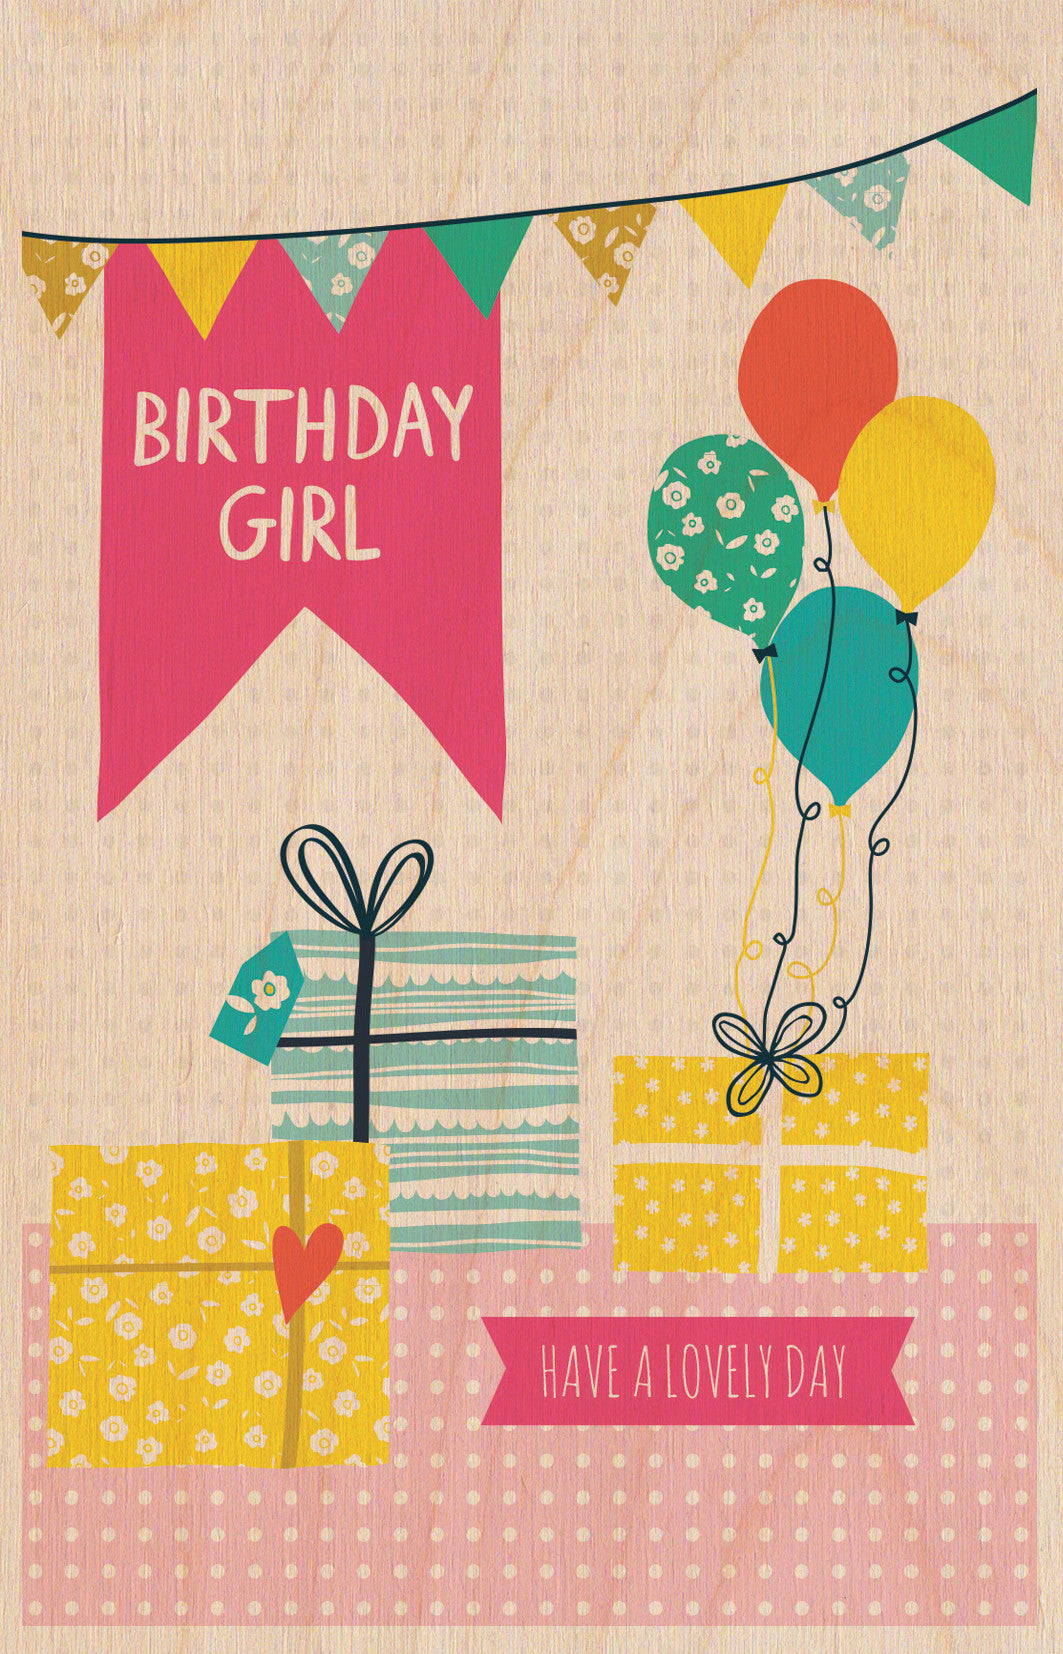 Birthday Girl Wooden Postcard Greeting Card - The Love Trees